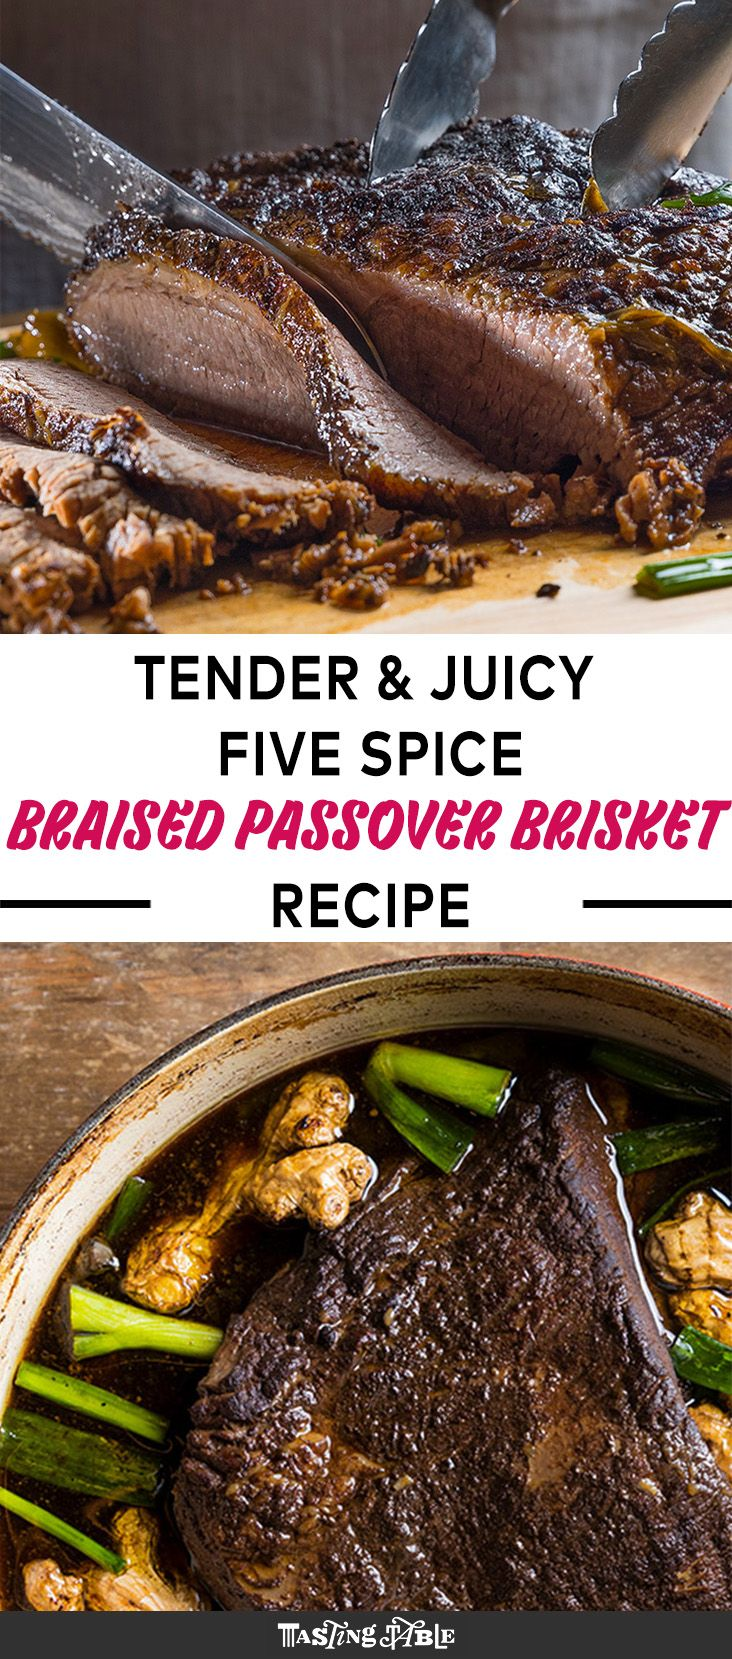 Pig and Khao's Leah Cohen combines her Jewish and Filipino heritages into a braised brisket recipe for Passover with five-spice and charred ginger.